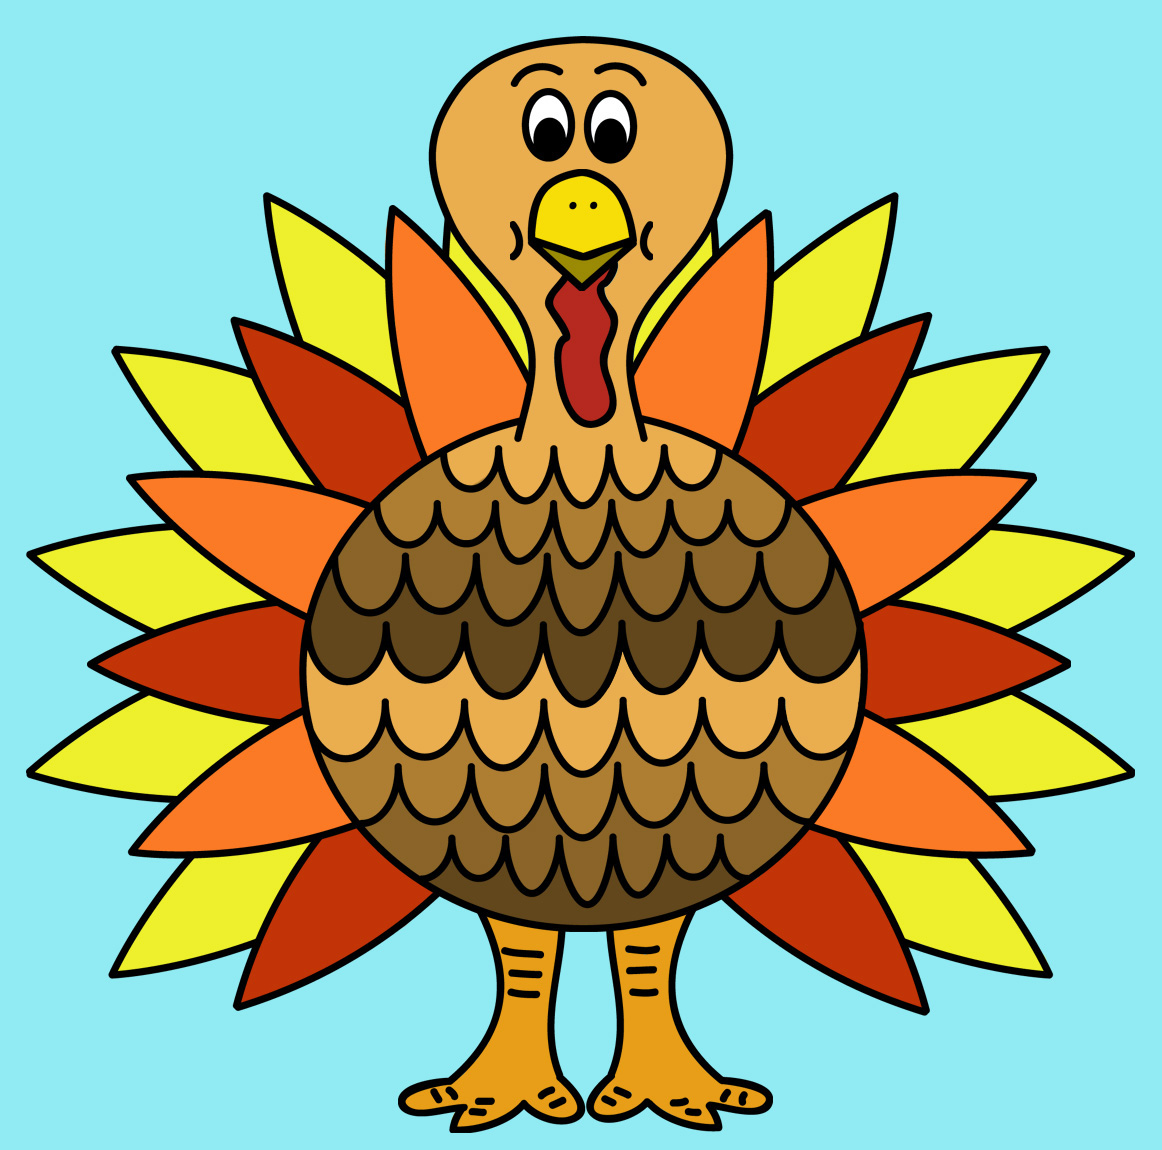 Coloring pages already colored - How To Color A Turkey